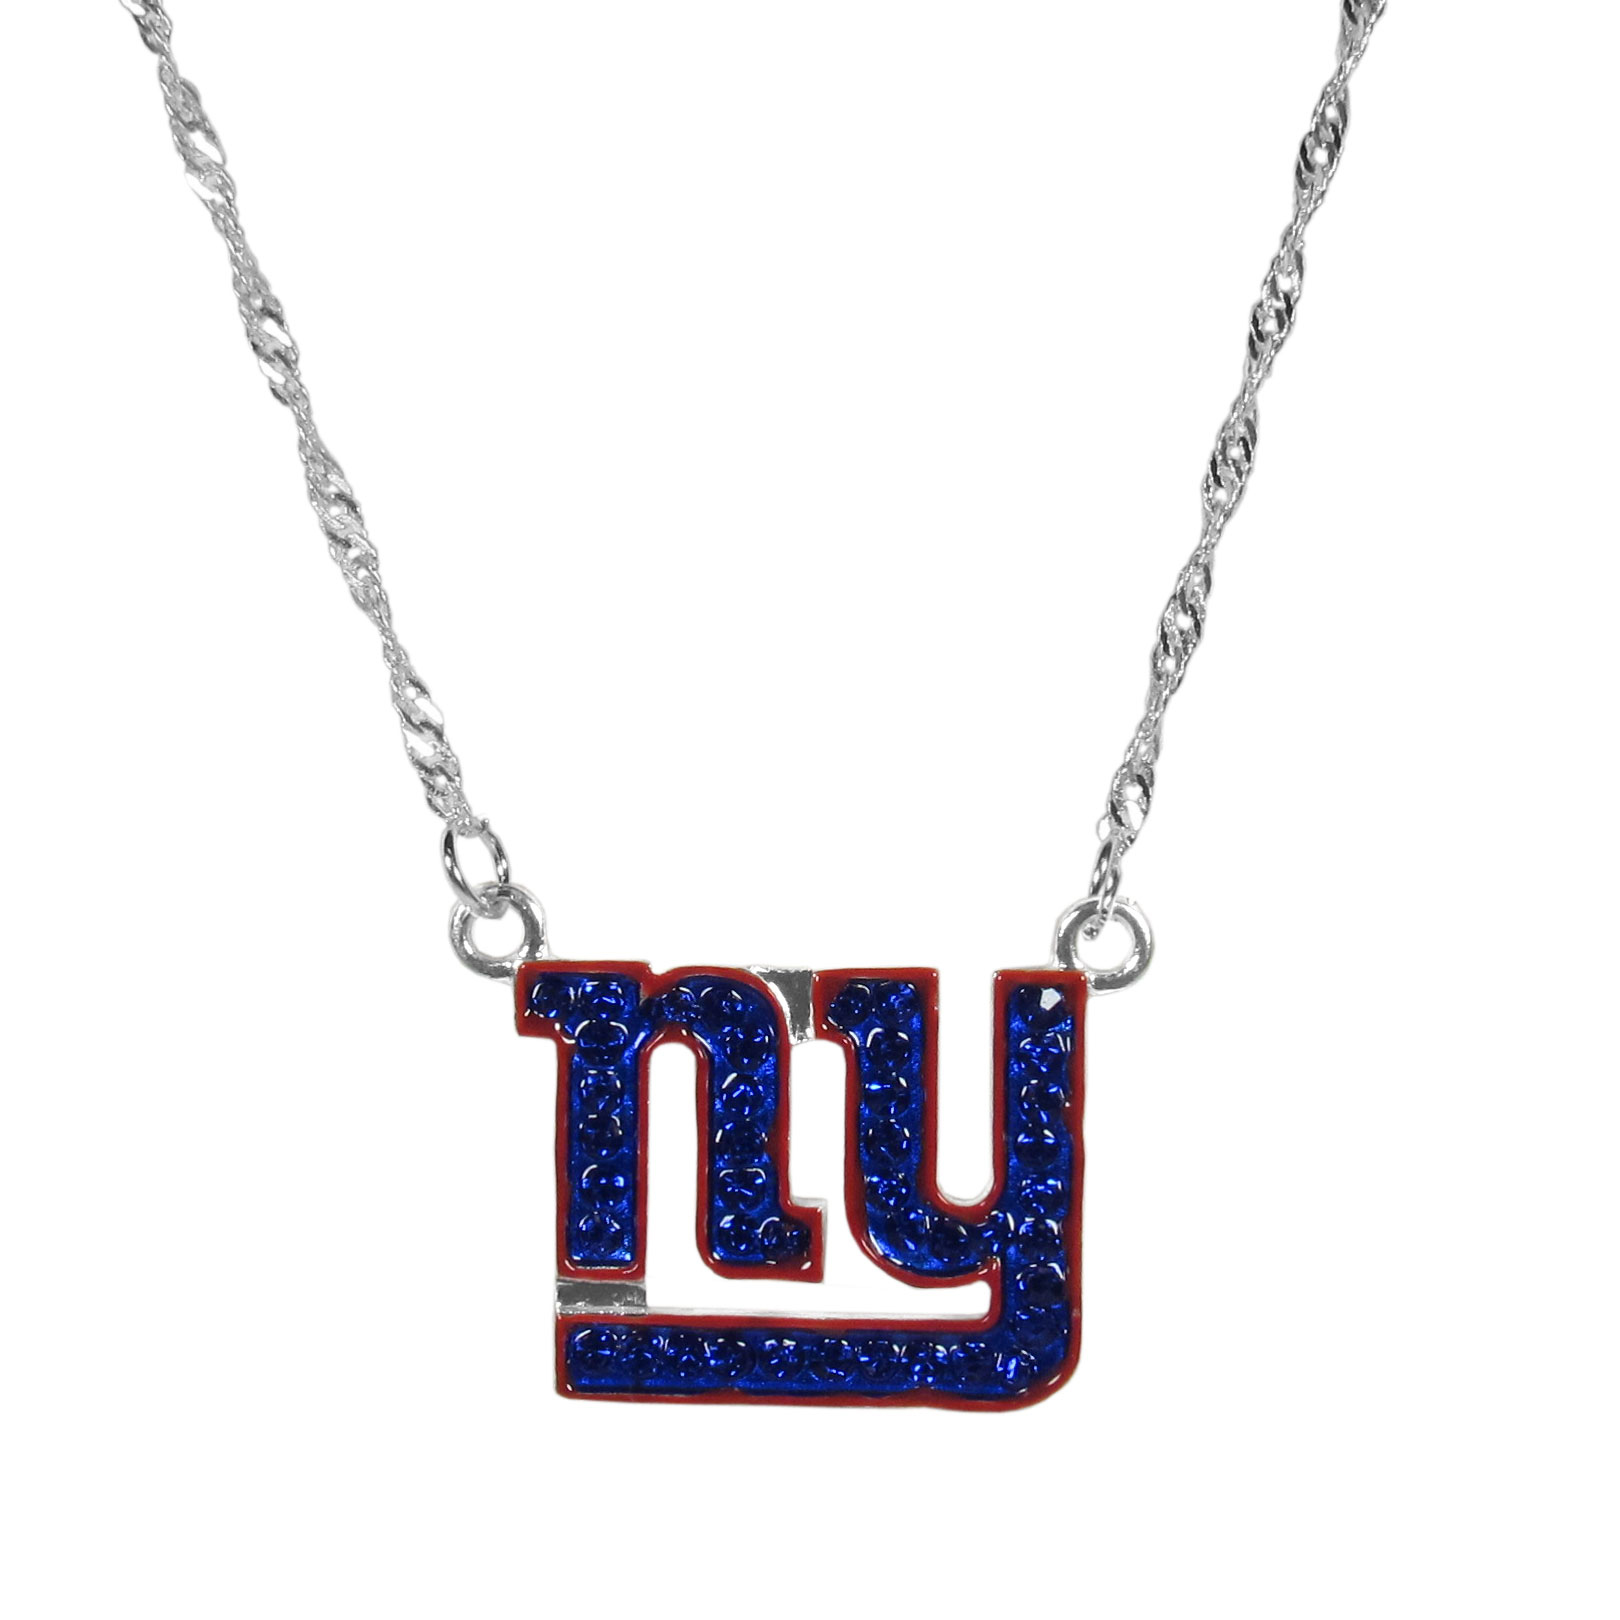 New York Giants Crystal Logo Necklace - This is a must-have fan accessory with a delicately beautiful 16 inch silver plated chain and eye-catching, large New York Giants charm with tons of sparkling team colored crystals. The trendy look is finished with detailed team colors and the chain can be adjusted with a 2 inch extender. The bold look makes a statement on game day and the classic style is chic enough for everyday.